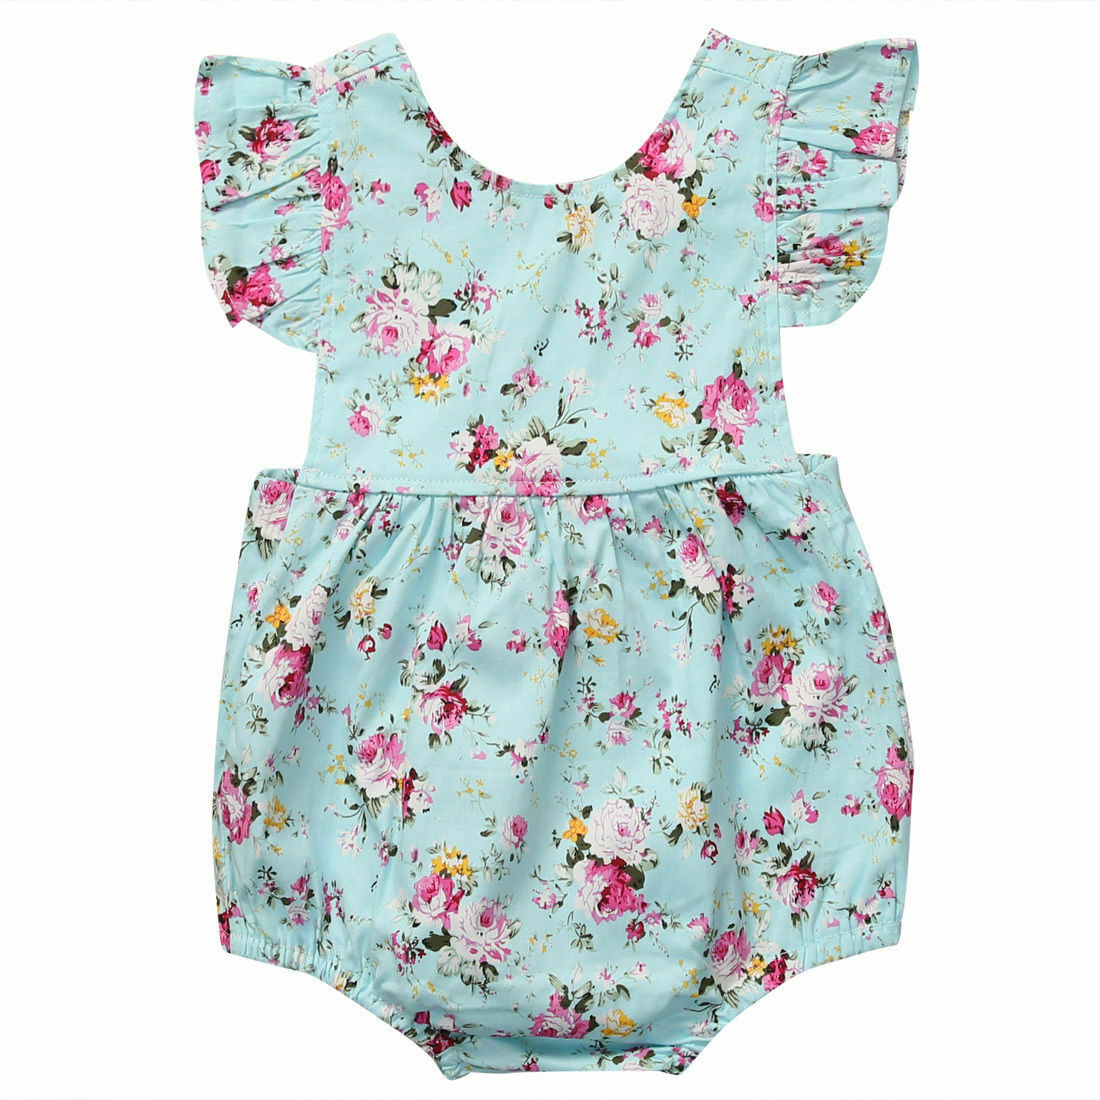 0-18M Toddler Baby Girls Clothes Summer Flying Sleeveless Floral Fashion Cotton Baby   Romper   One Piece Jumpsuit Baby Clothes